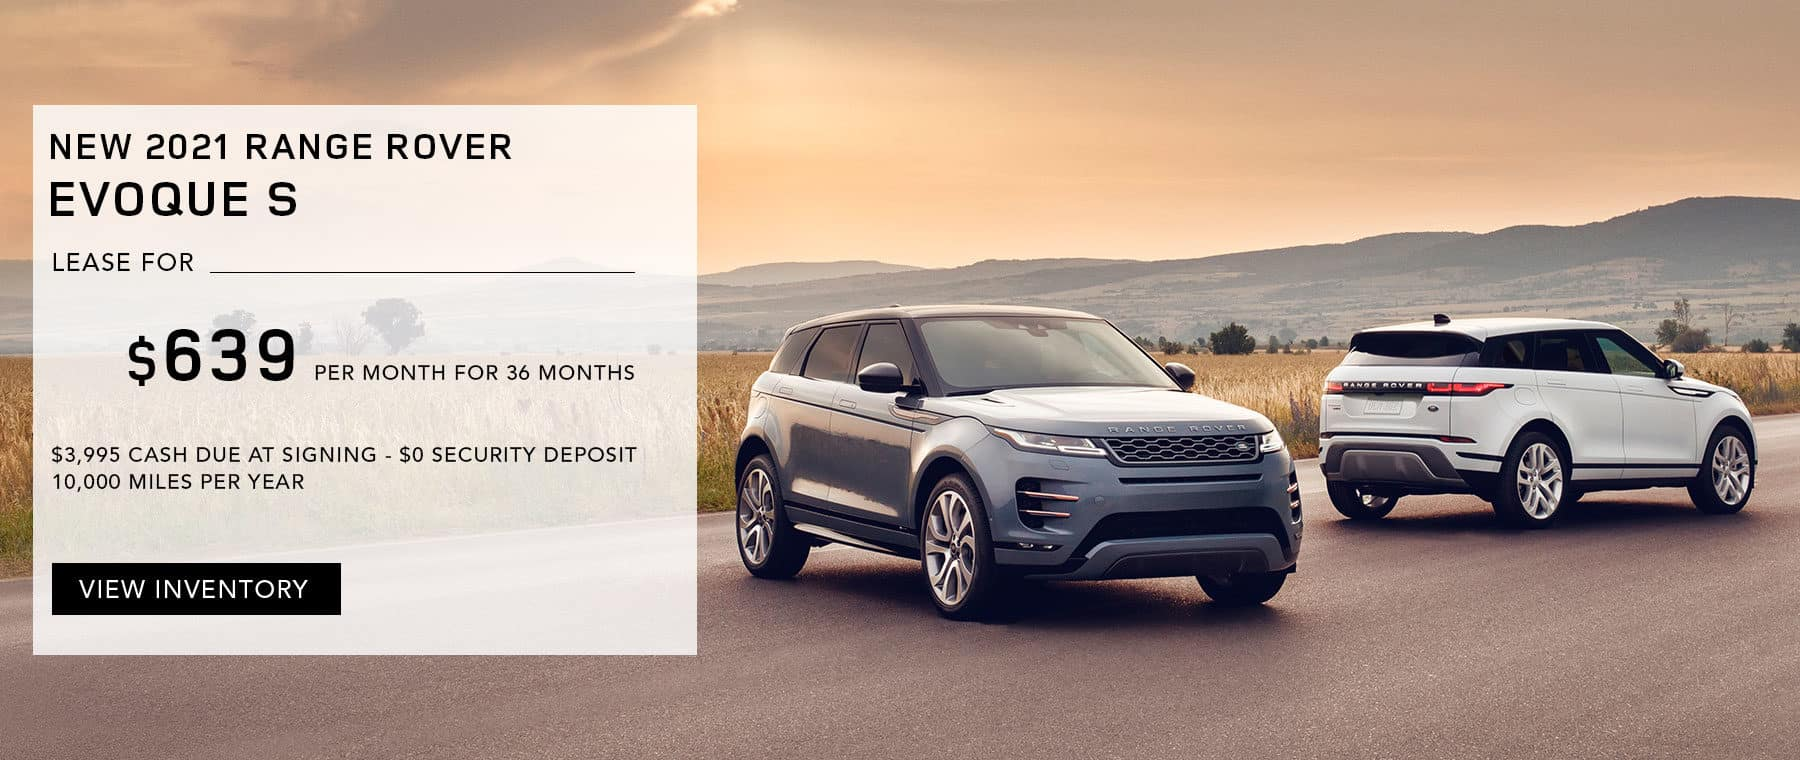 NEW 2021 RANGE ROVER EVOQUE S. $639 PER MONTH. 36 MONTH LEASE TERM. $3,995 CASH DUE AT SIGNING. $0 SECURITY DEPOSIT. 10,000 MILES PER YEAR. EXCLUDES RETAILER FEES, TAXES, TITLE AND REGISTRATION FEES, PROCESSING FEE AND ANY EMISSION TESTING CHARGE. OFFER ENDS 8/31/2021.